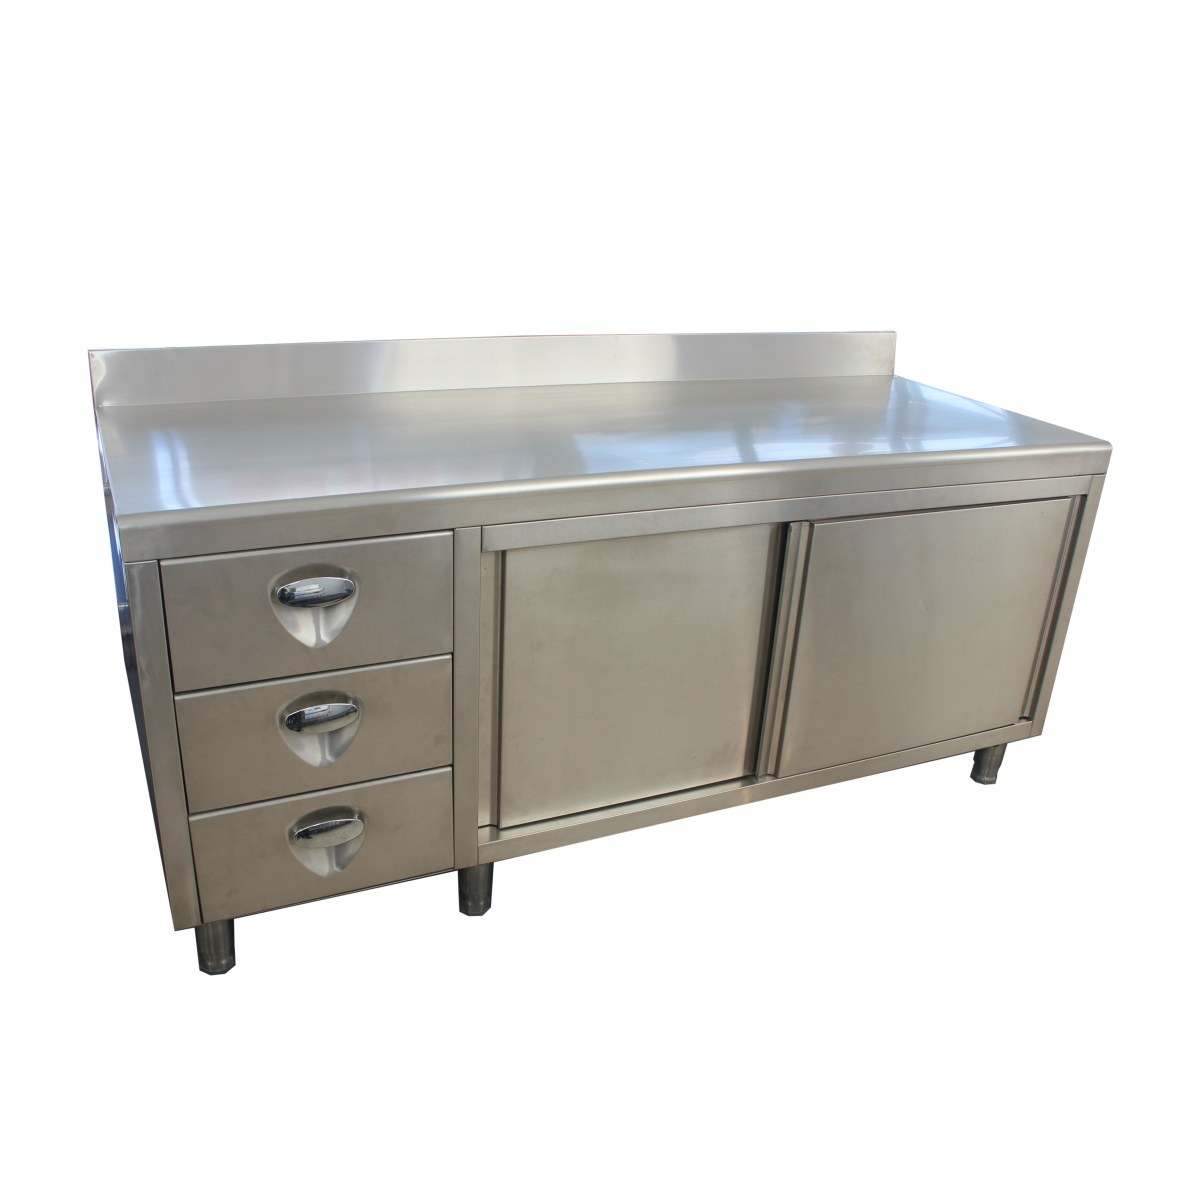 Stainless Steel Cabinet With Drawers Shandong Legend Commercial